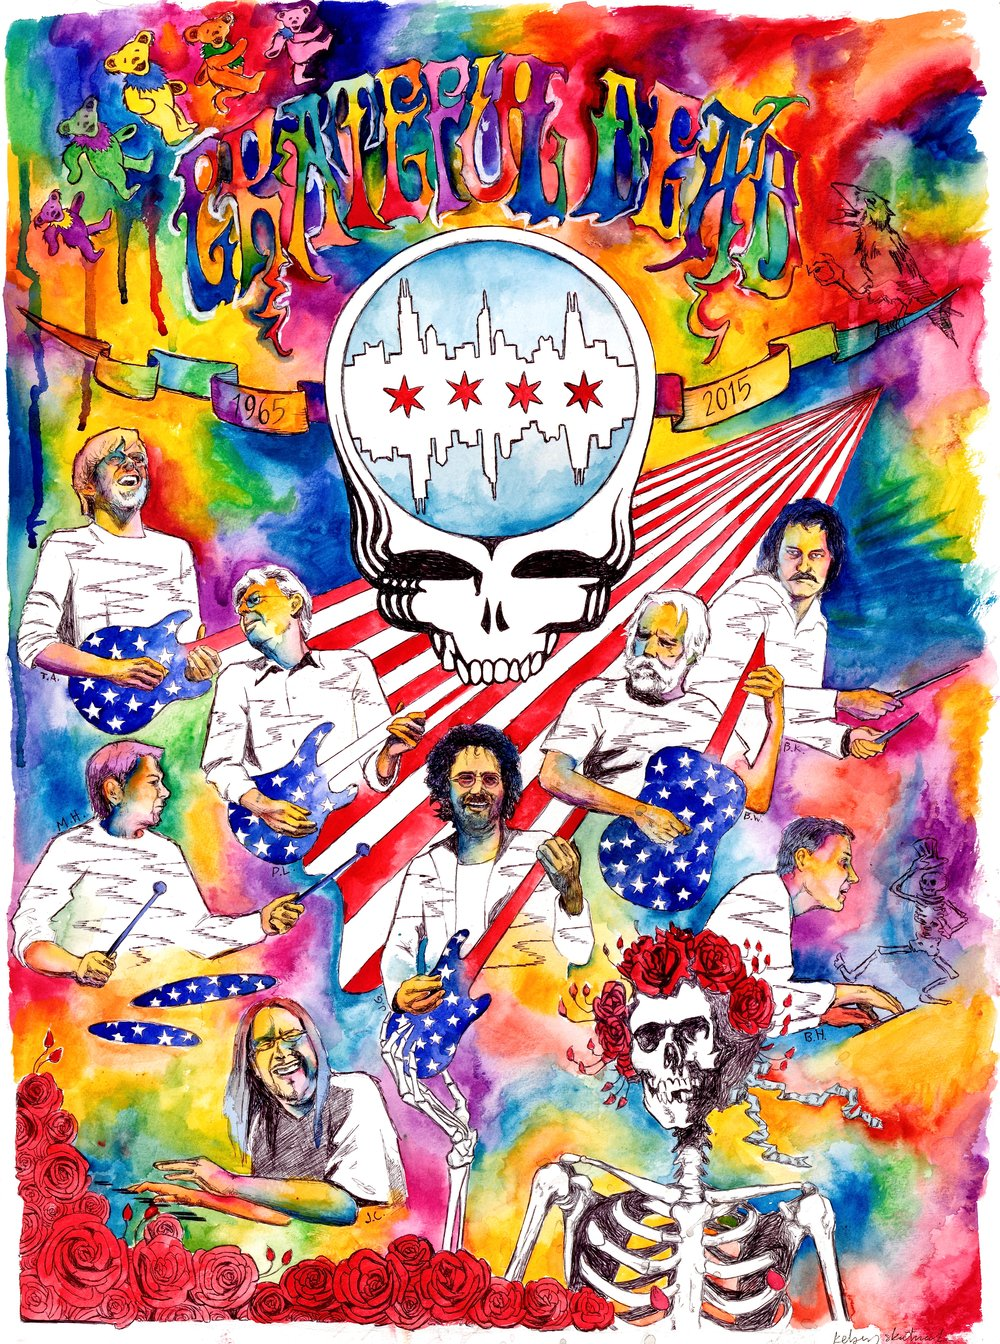 Grateful Dead 50 2015, bic pen & watercolor Sold out of prints 4th of July weekend when the Grateful Dead & their vast followers flooded Chicago for their 5oth anniversary Fare Thee Well show. 27 prints found owners & are lost to me & would love to discover where their homes reside.